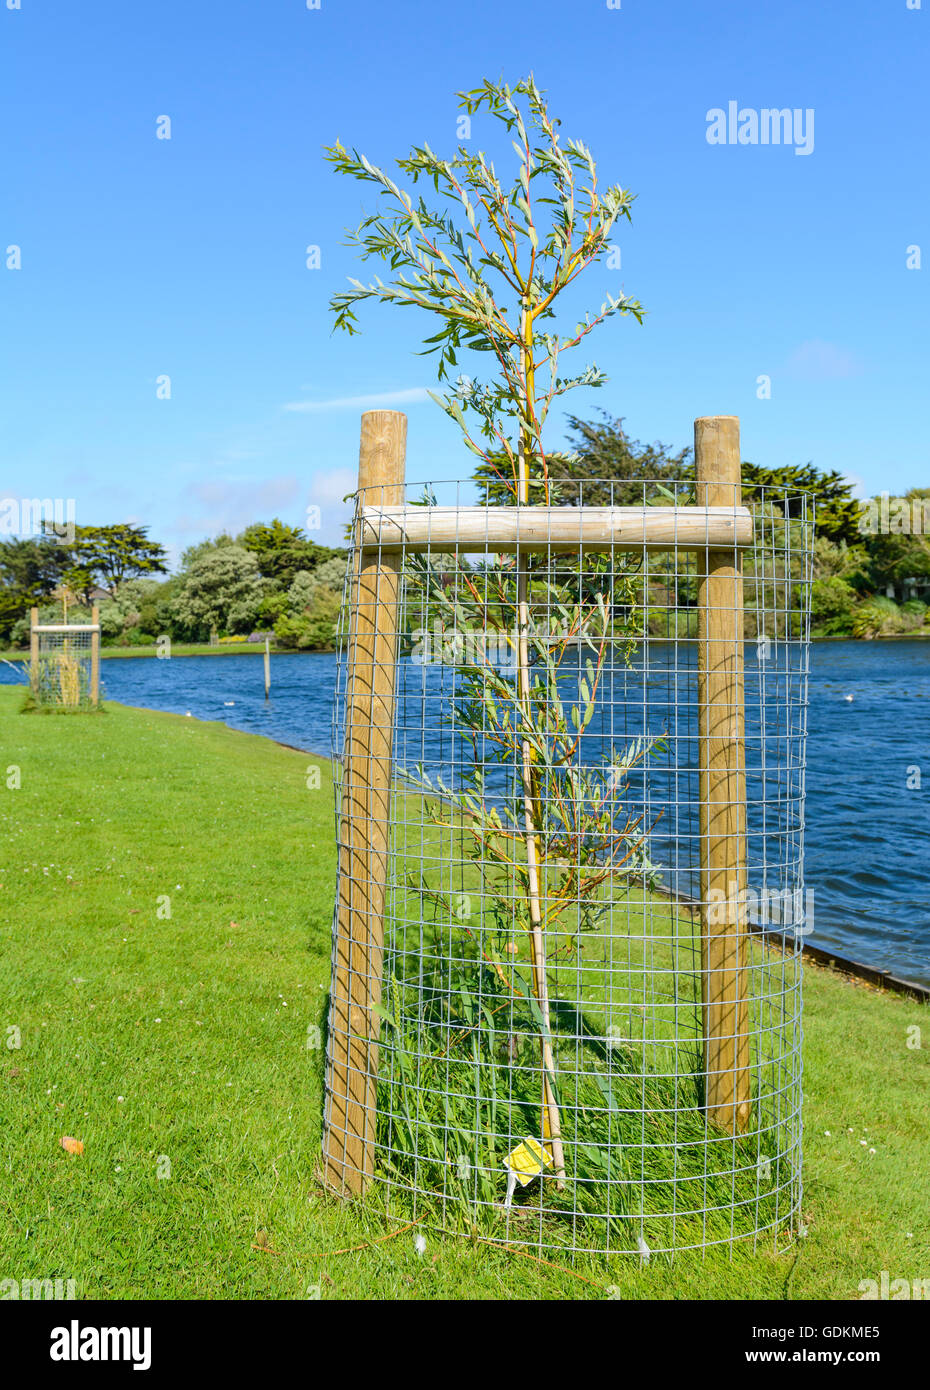 Newly planted Weeping Golden Willow tree with protective cage by a lake in a park in the UK. - Stock Image